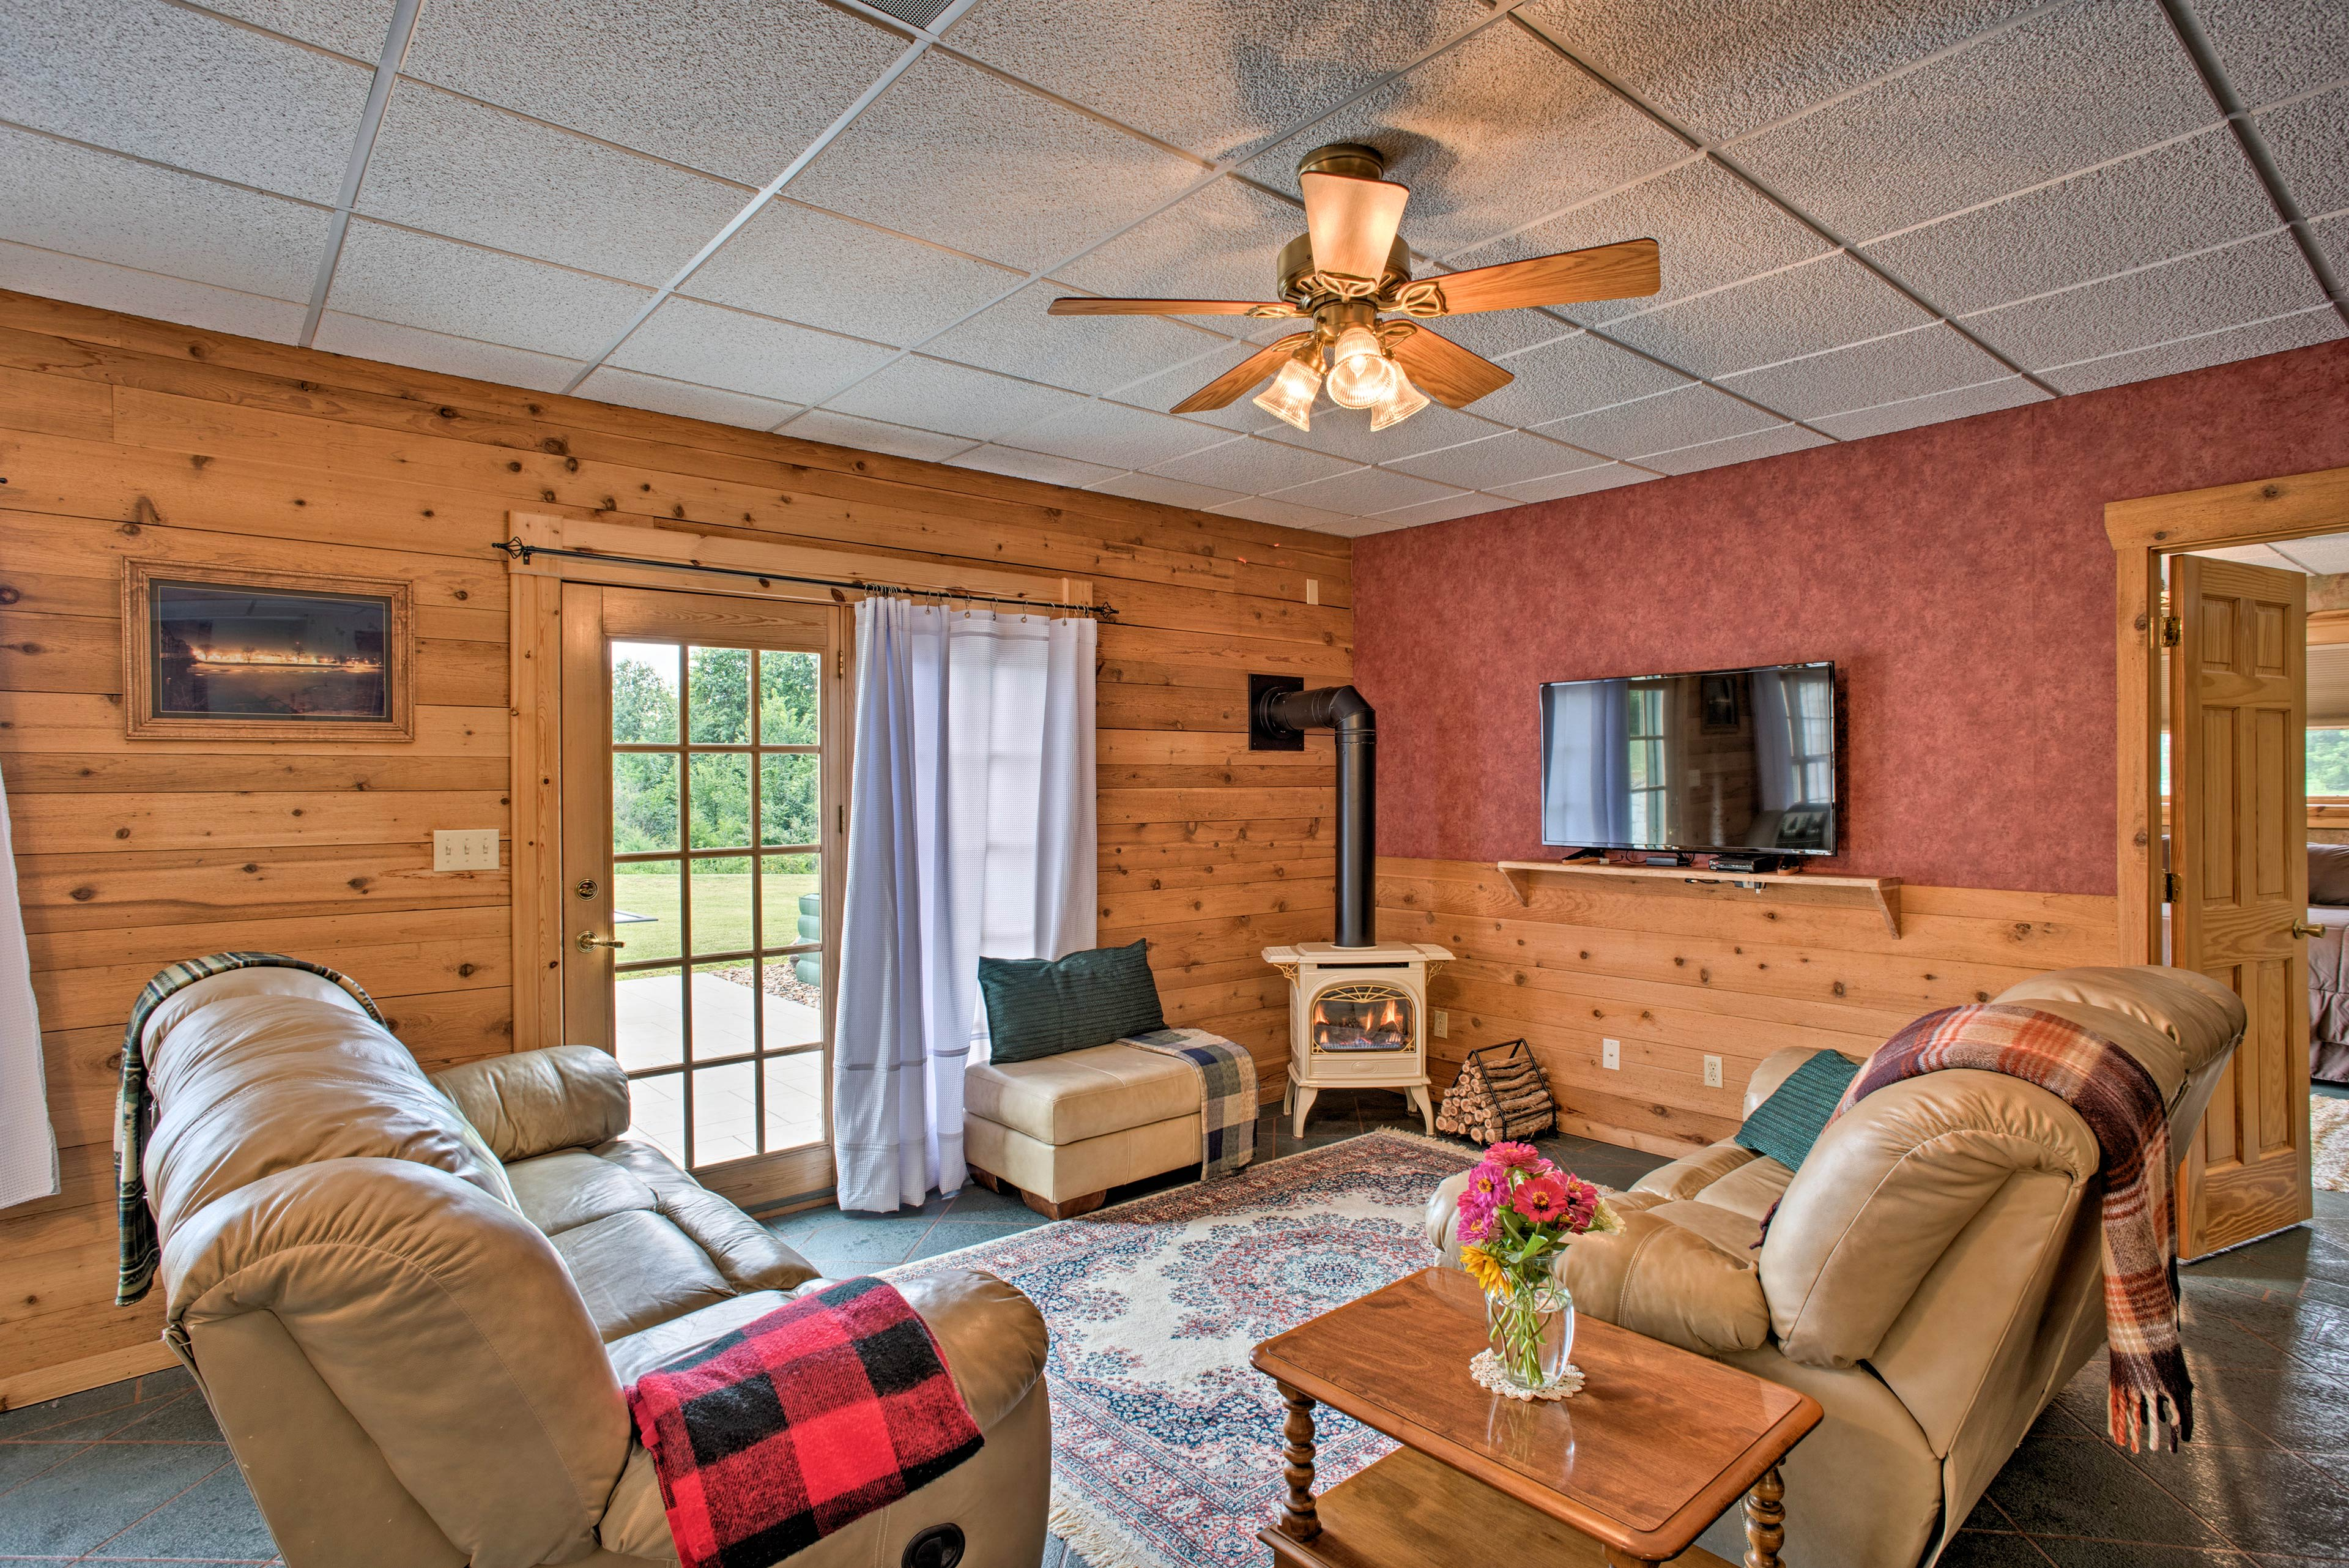 Discover the small town charm of Keosauqua at this vacation rental apartment!